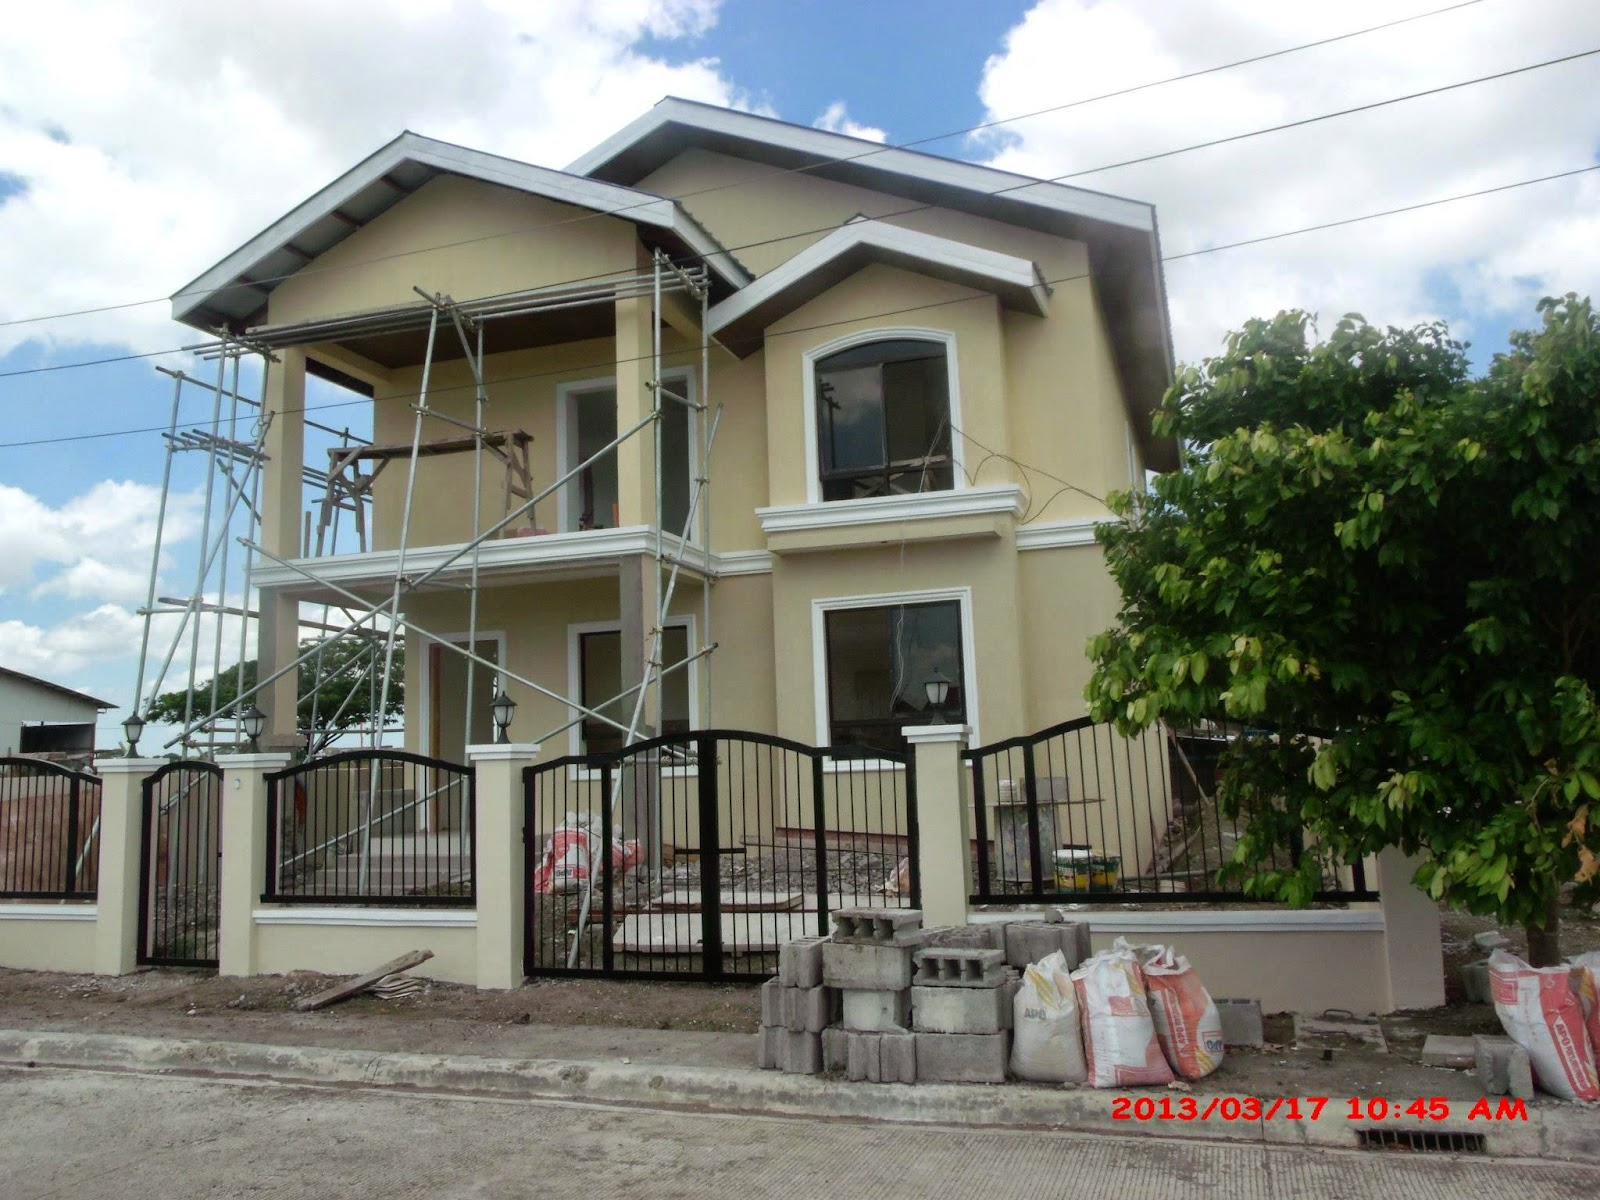 Savannah trails house construction project in oton iloilo philippines phase 4 lb lapuz - Home construction designs ...